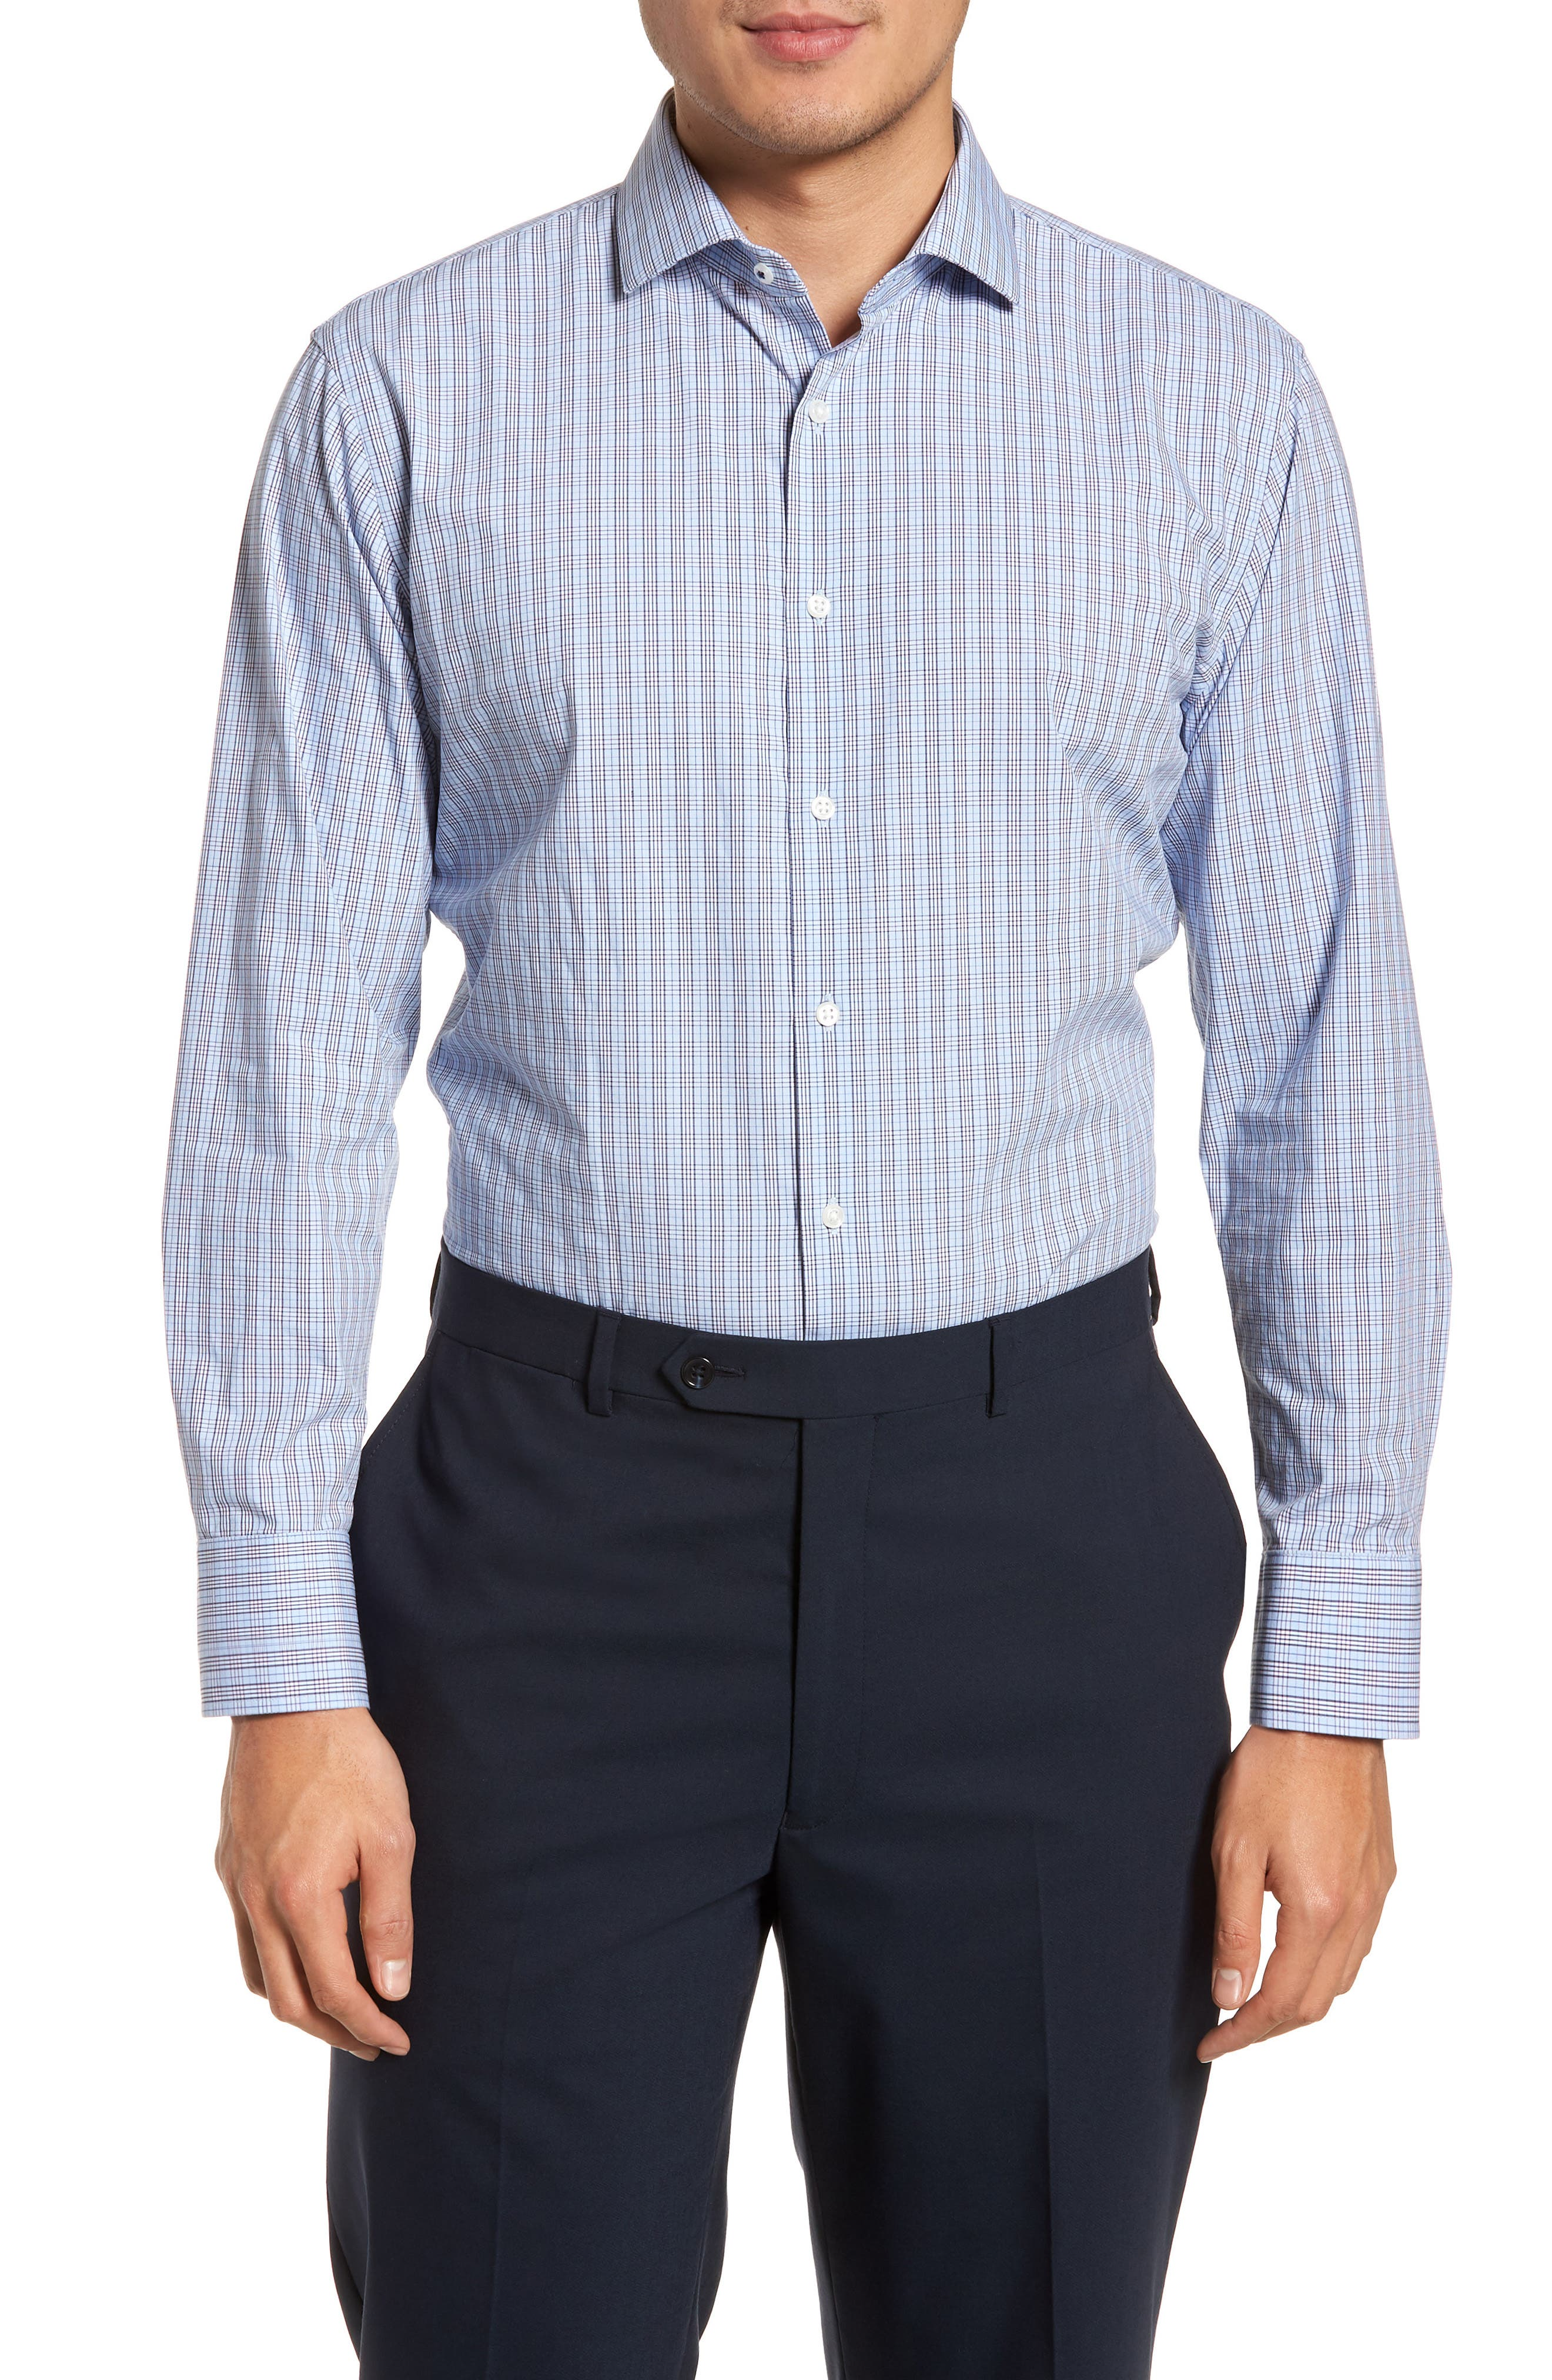 Alternate Image 1 Selected - Nordstrom Men's Shop Tech-Smart Trim Fit Grid Dress Shirt